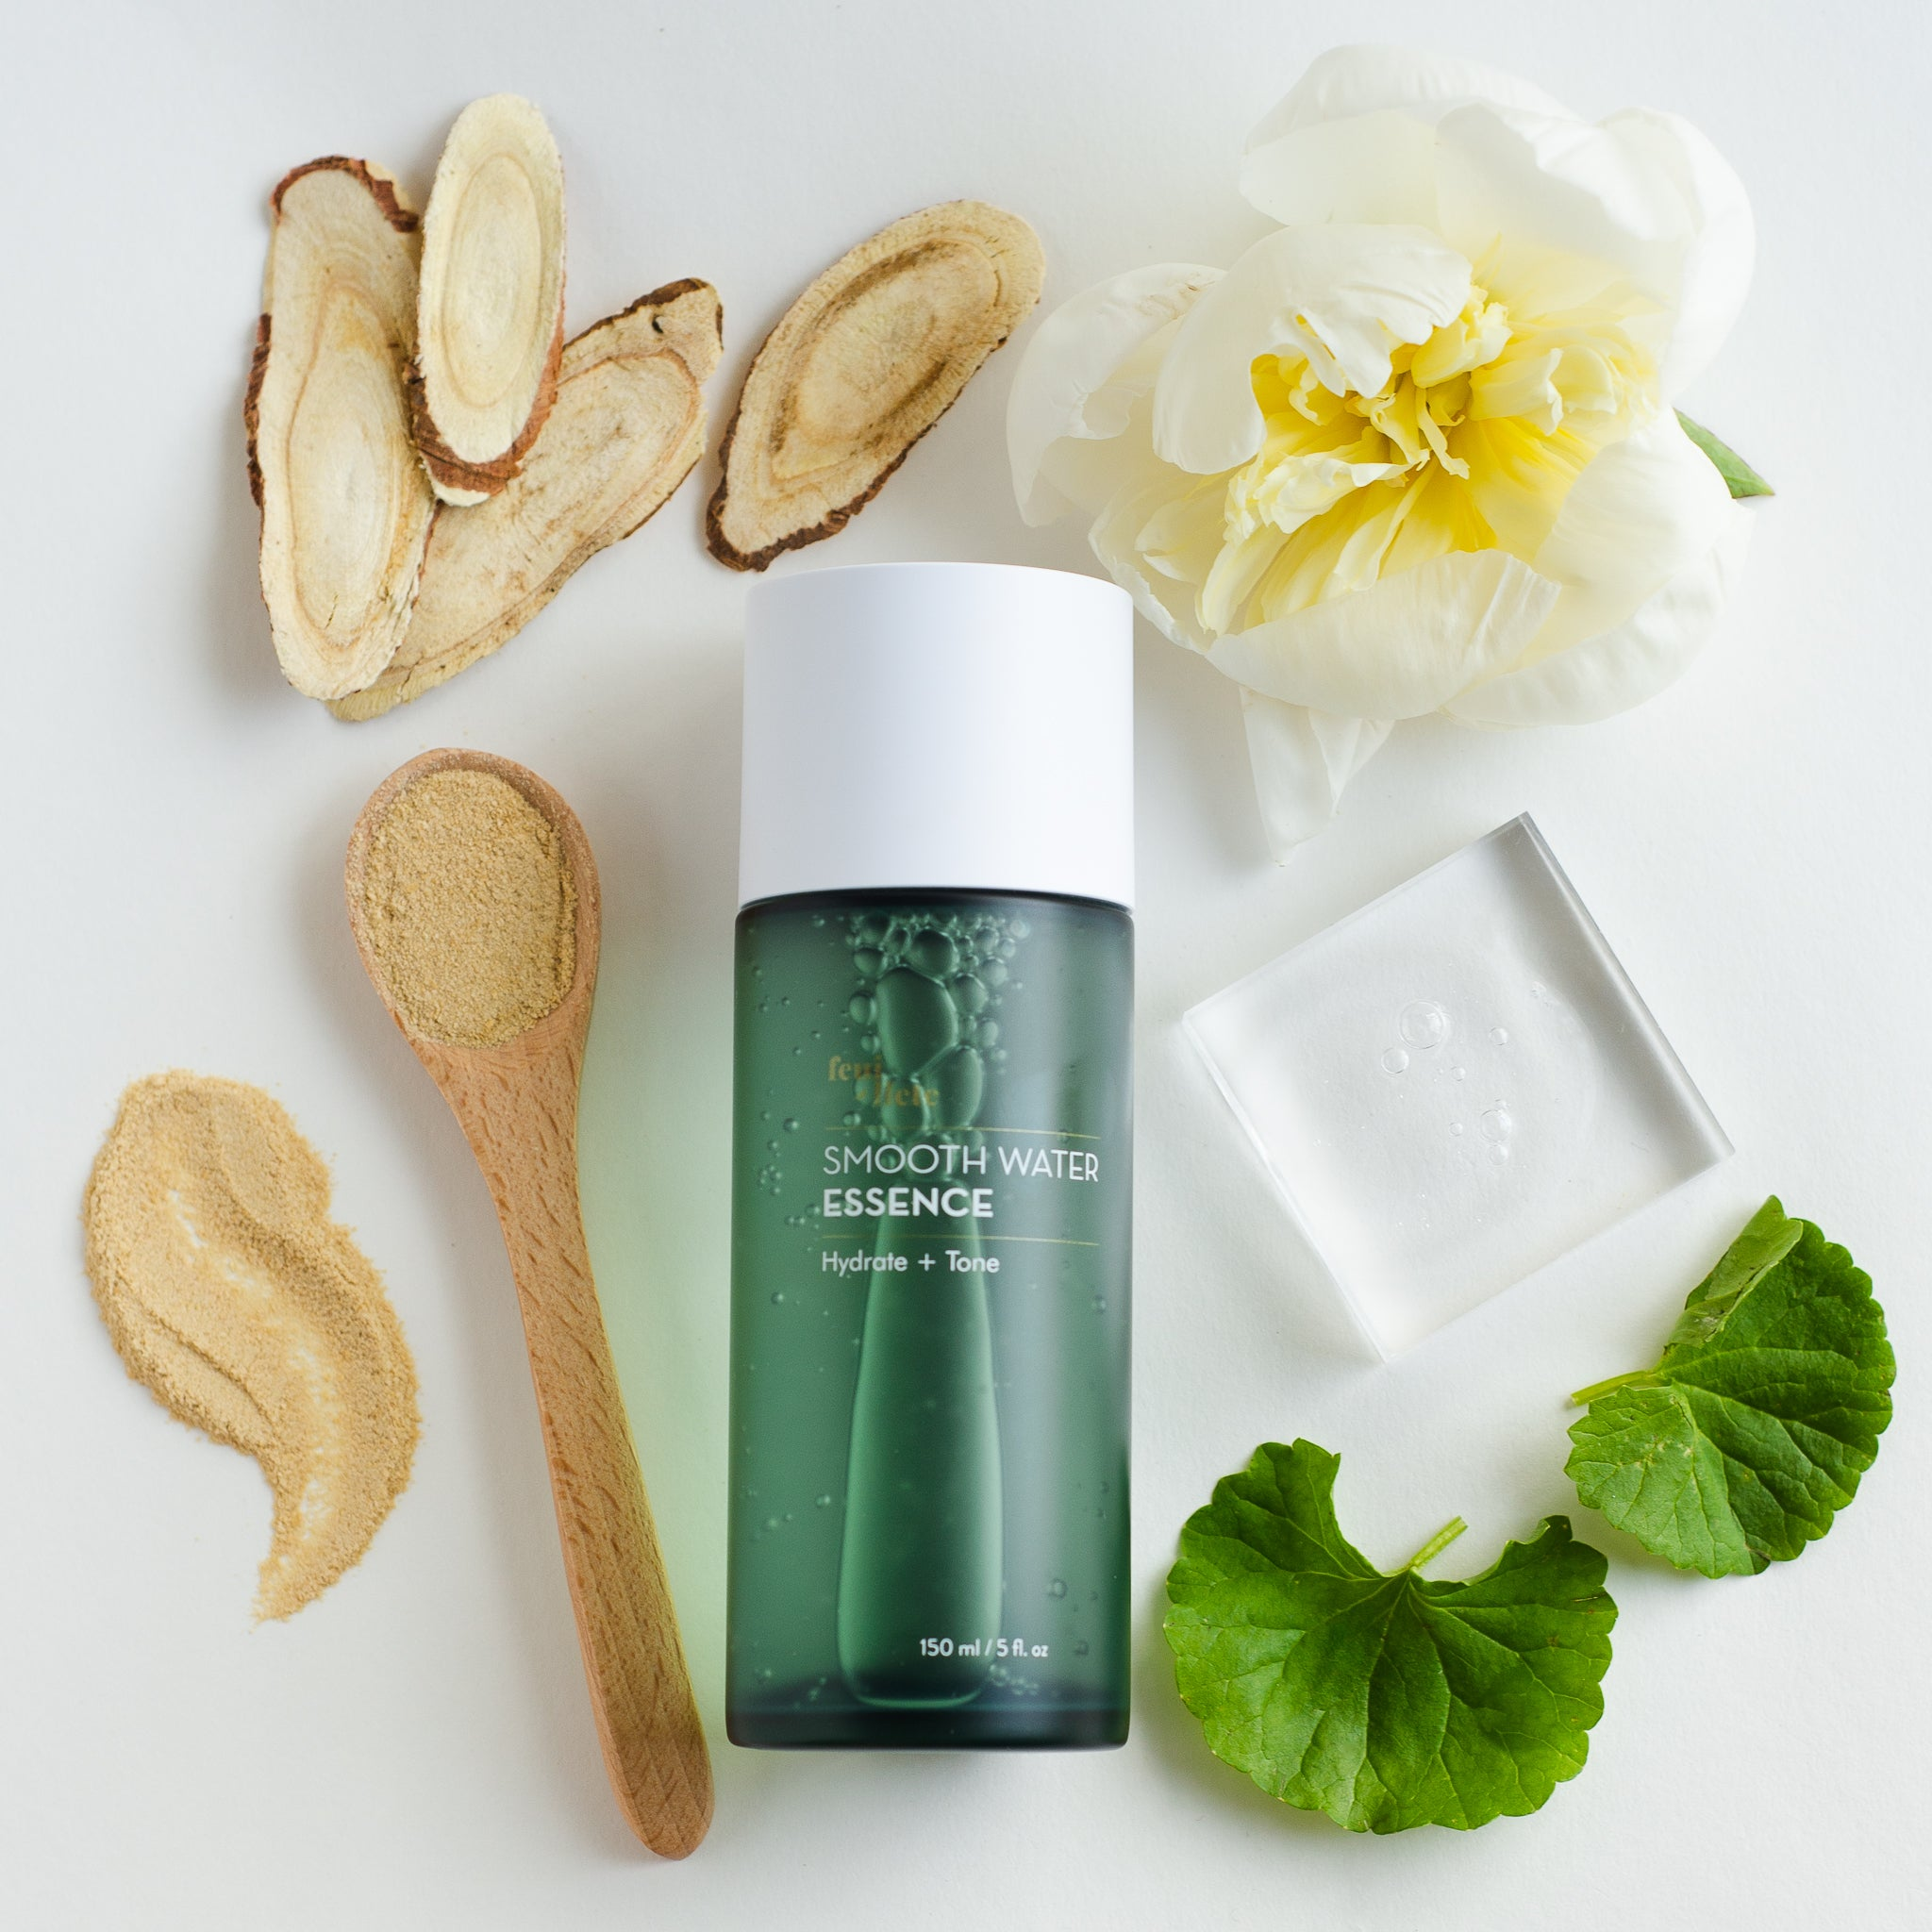 Smooth Water Essence - Feuillete